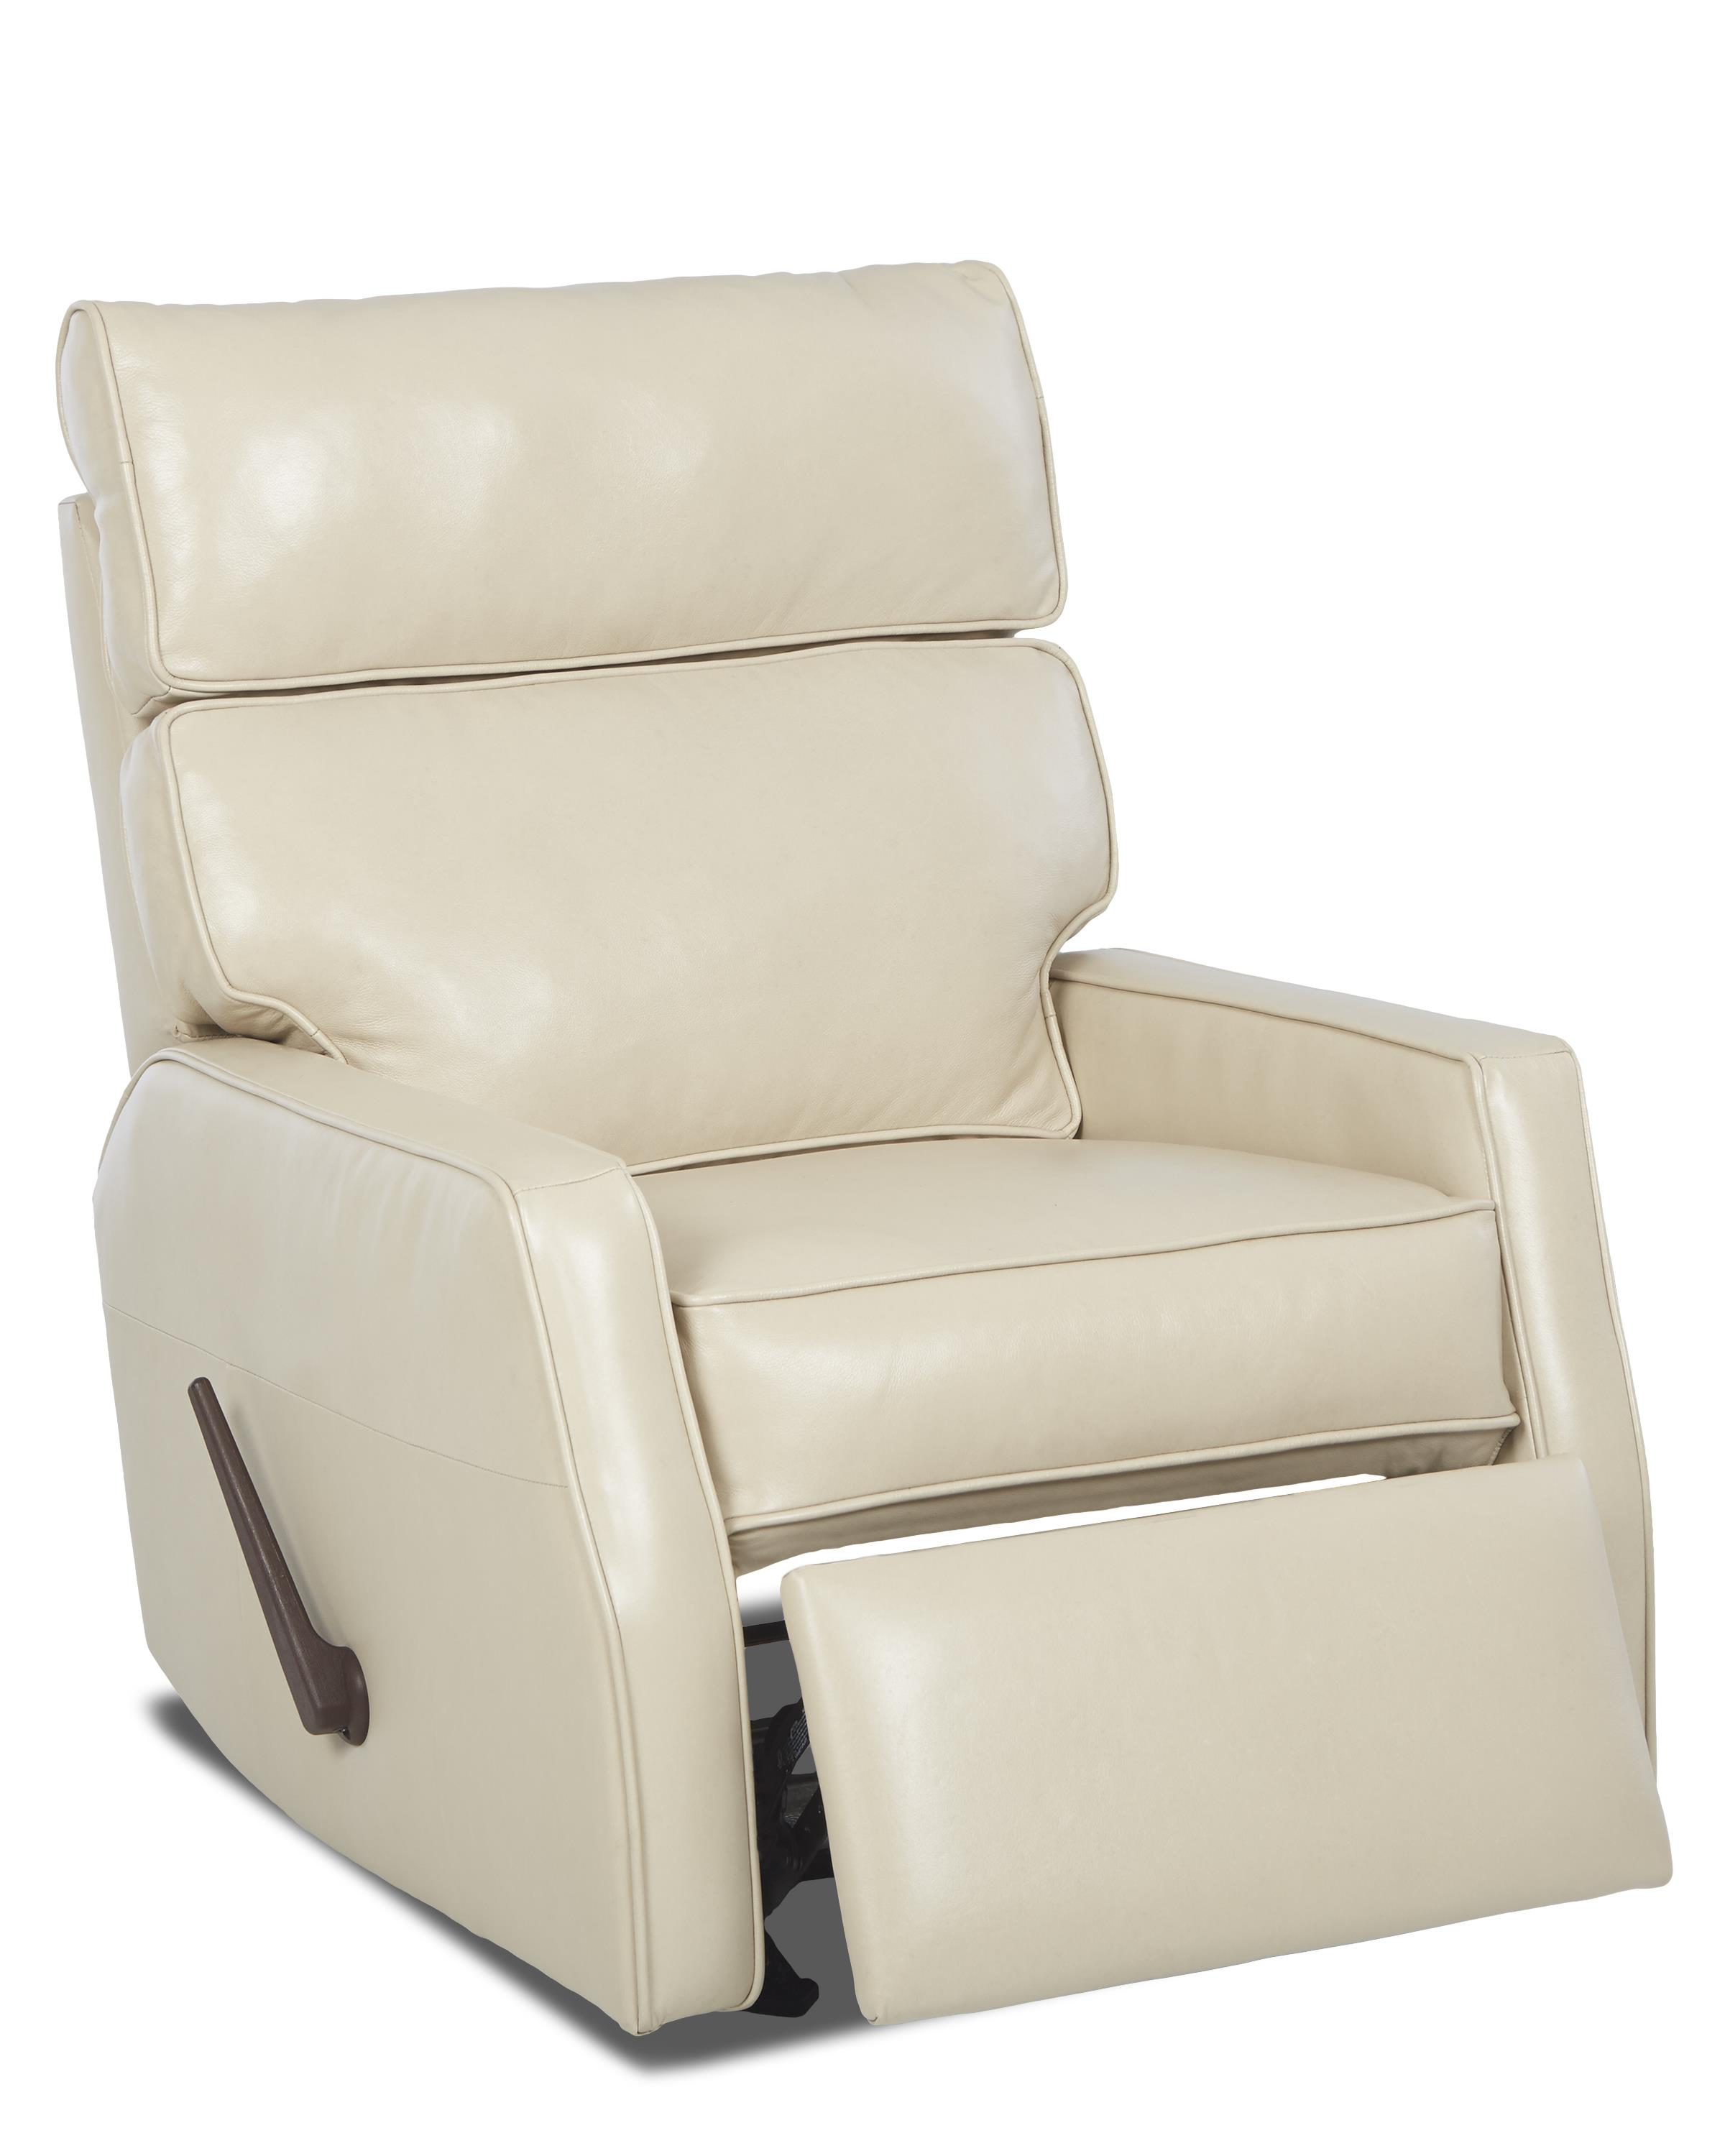 Fairlane contemporary swivel rocking reclining chair by for Modern swivel chair